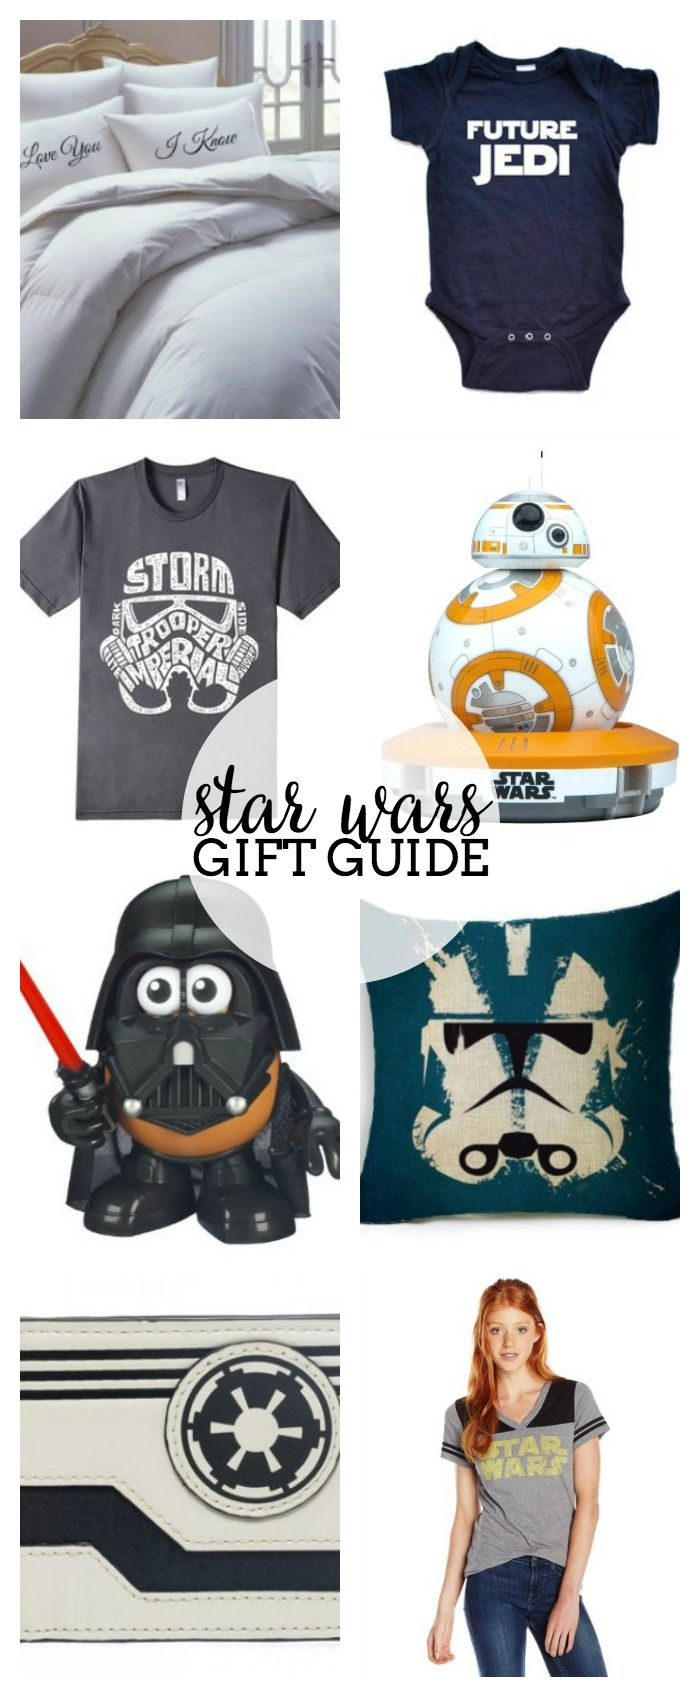 170 best star wars images on pinterest star wars party birthdays star wars gift guide for all ages christmas presentsdiy solutioingenieria Images